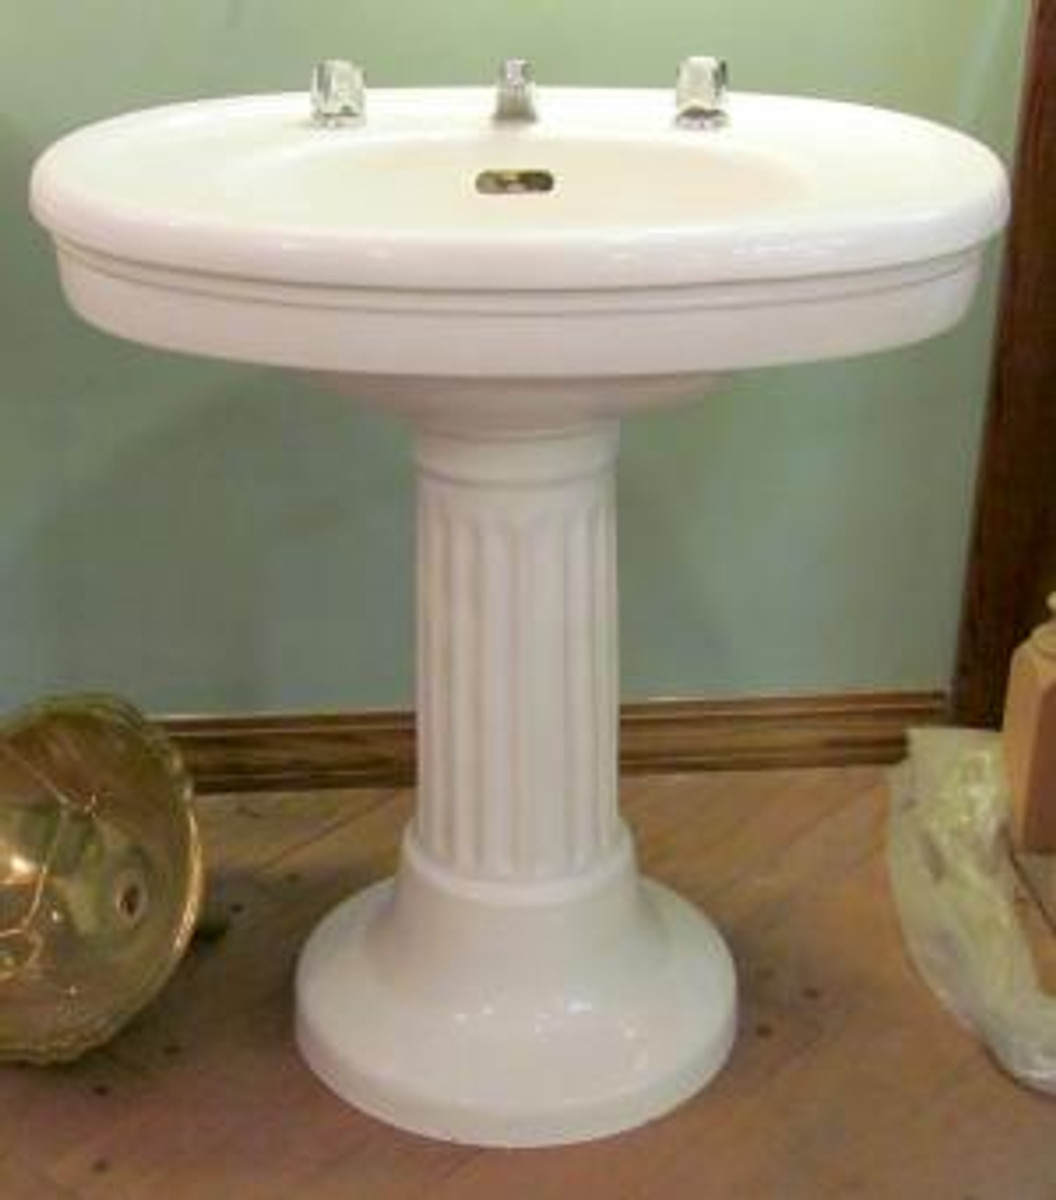 """Gorgeous Colonial Revival Style vitreous china oval topped pedestal sink  made by """"SESCO"""" featuring a fluted column pedestal."""